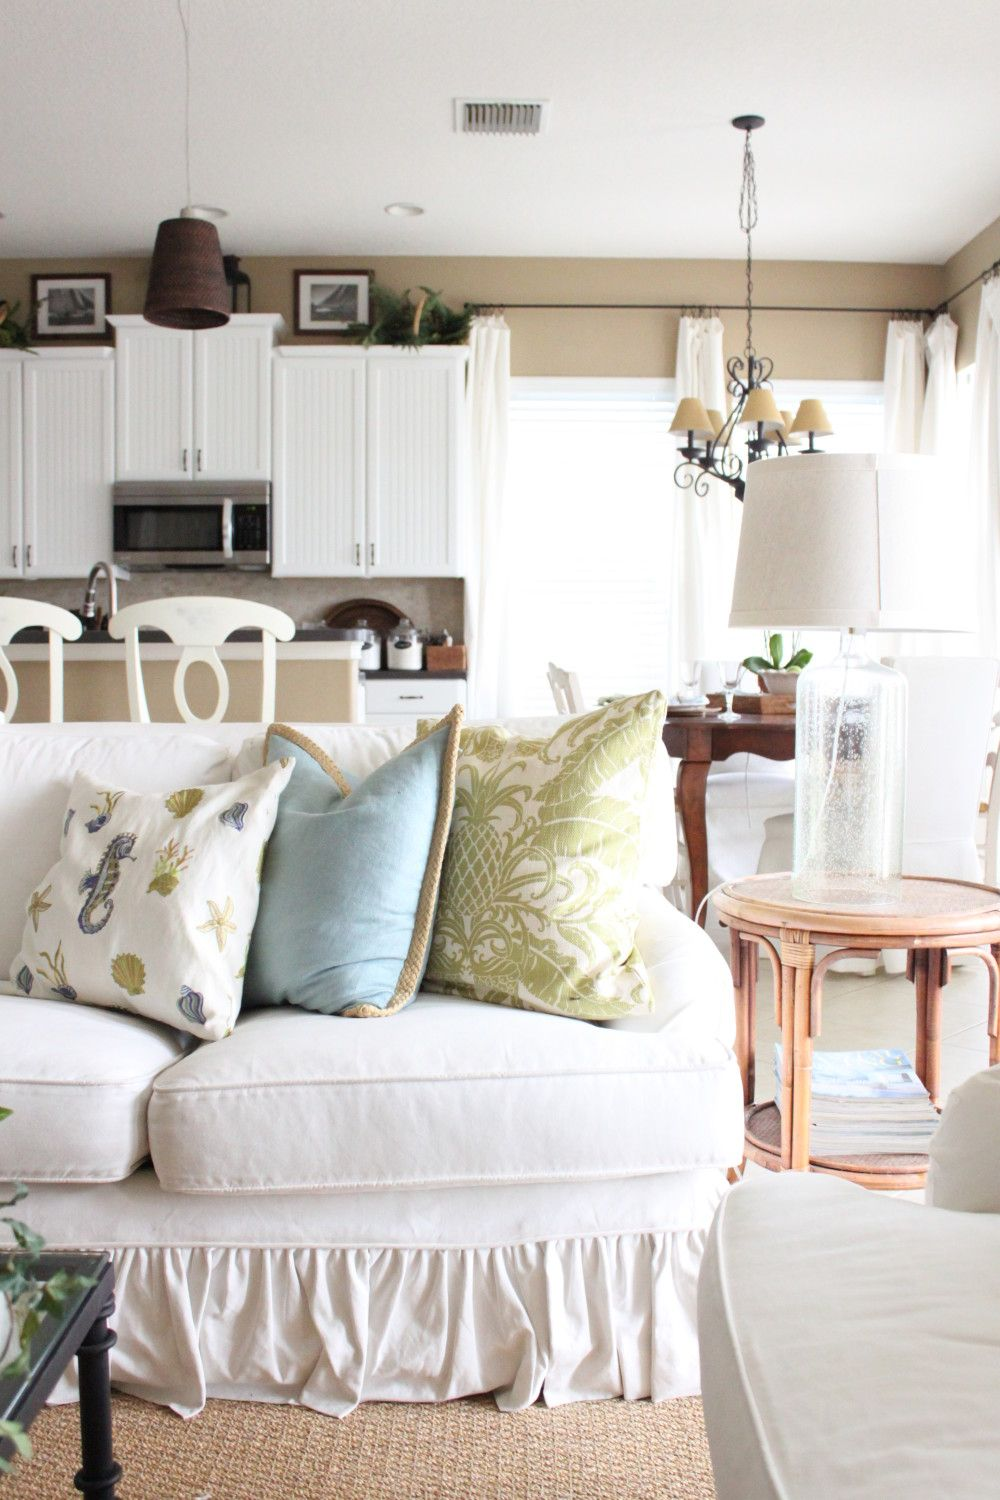 Love It Florida Style: My Favorite Room- Guest Post At Savvy Southern Style